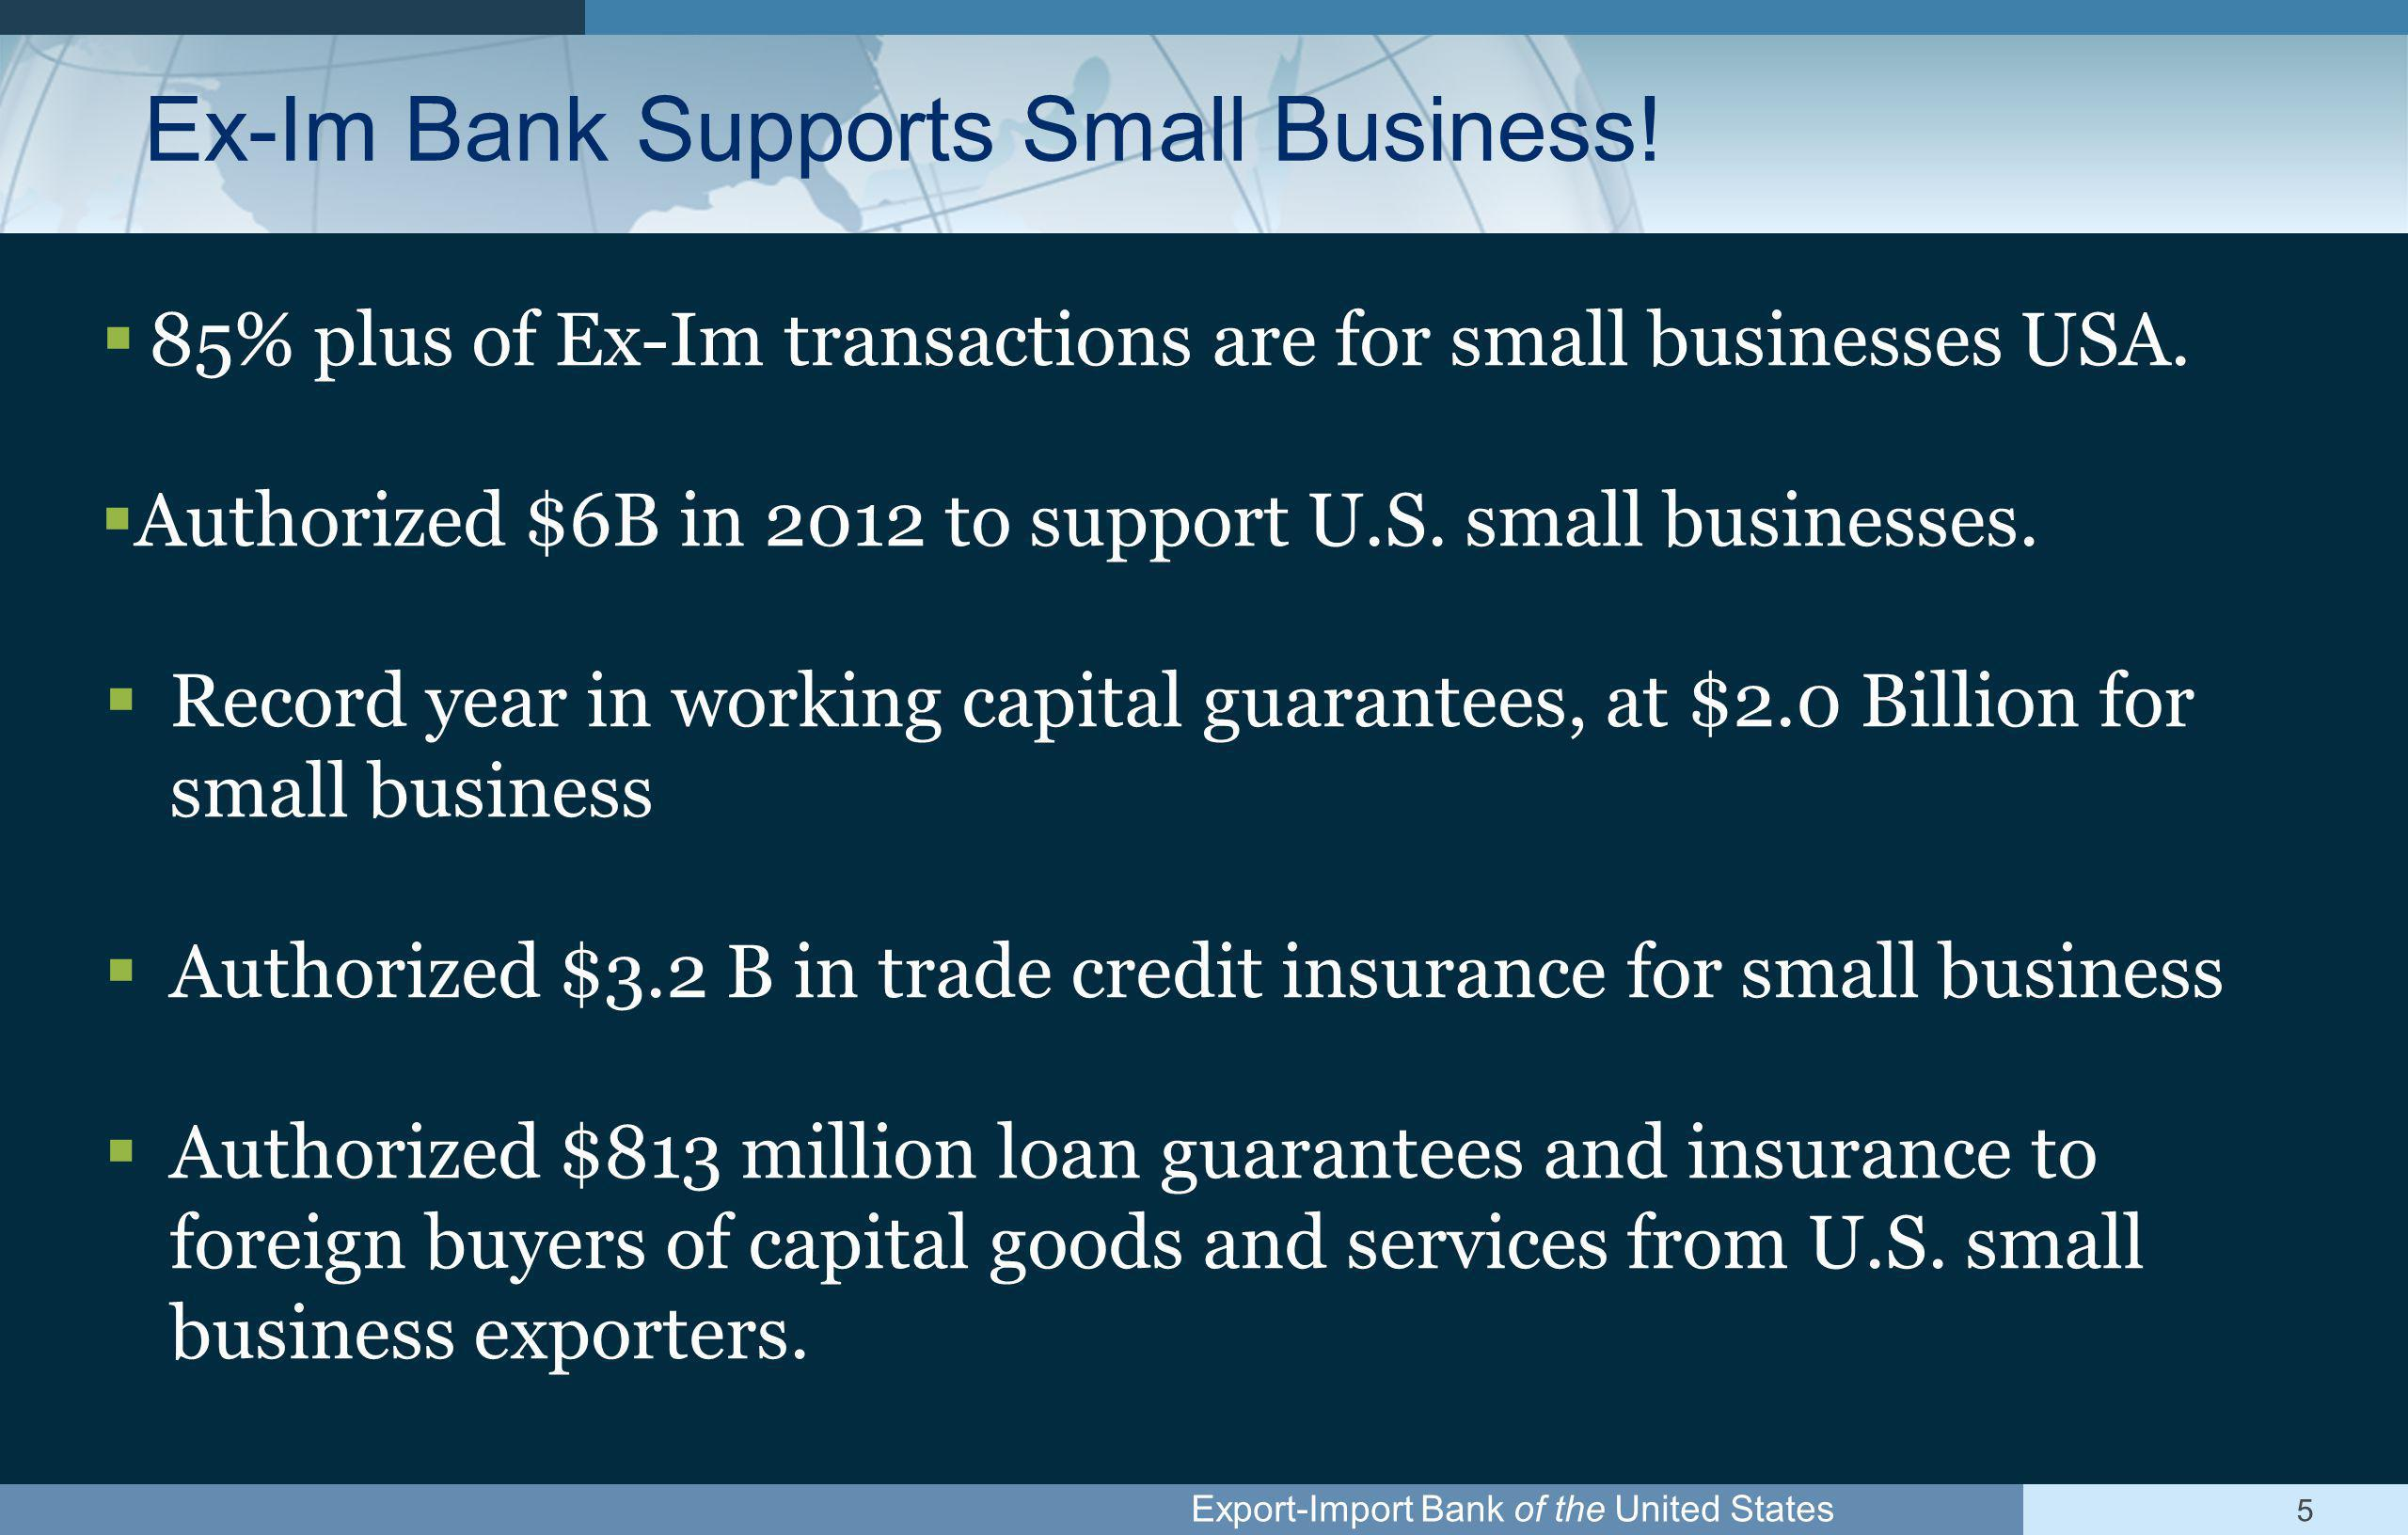 Export-Import Bank of the United States Global Access: Public/Private Export Campaign Number of Small Business Exporters ▪ 27 million small businesses in the US ▪ 260,000 export (less than1%) ▪ 60% of these export to only one country National Export Initiative ▪ Double Exports from the US in five years (2009-2014) ▪ Exports: Smartest, best way to get the economy into high gear Ex-Im Bank's Small Business Global Access Initiative ▪ $9.0B in authorizations and 5,000 customers per year by 2014 ▪ Up from $3.0B and 2,000 customers in 2008 ▪ Budget neutral: no increase in budget